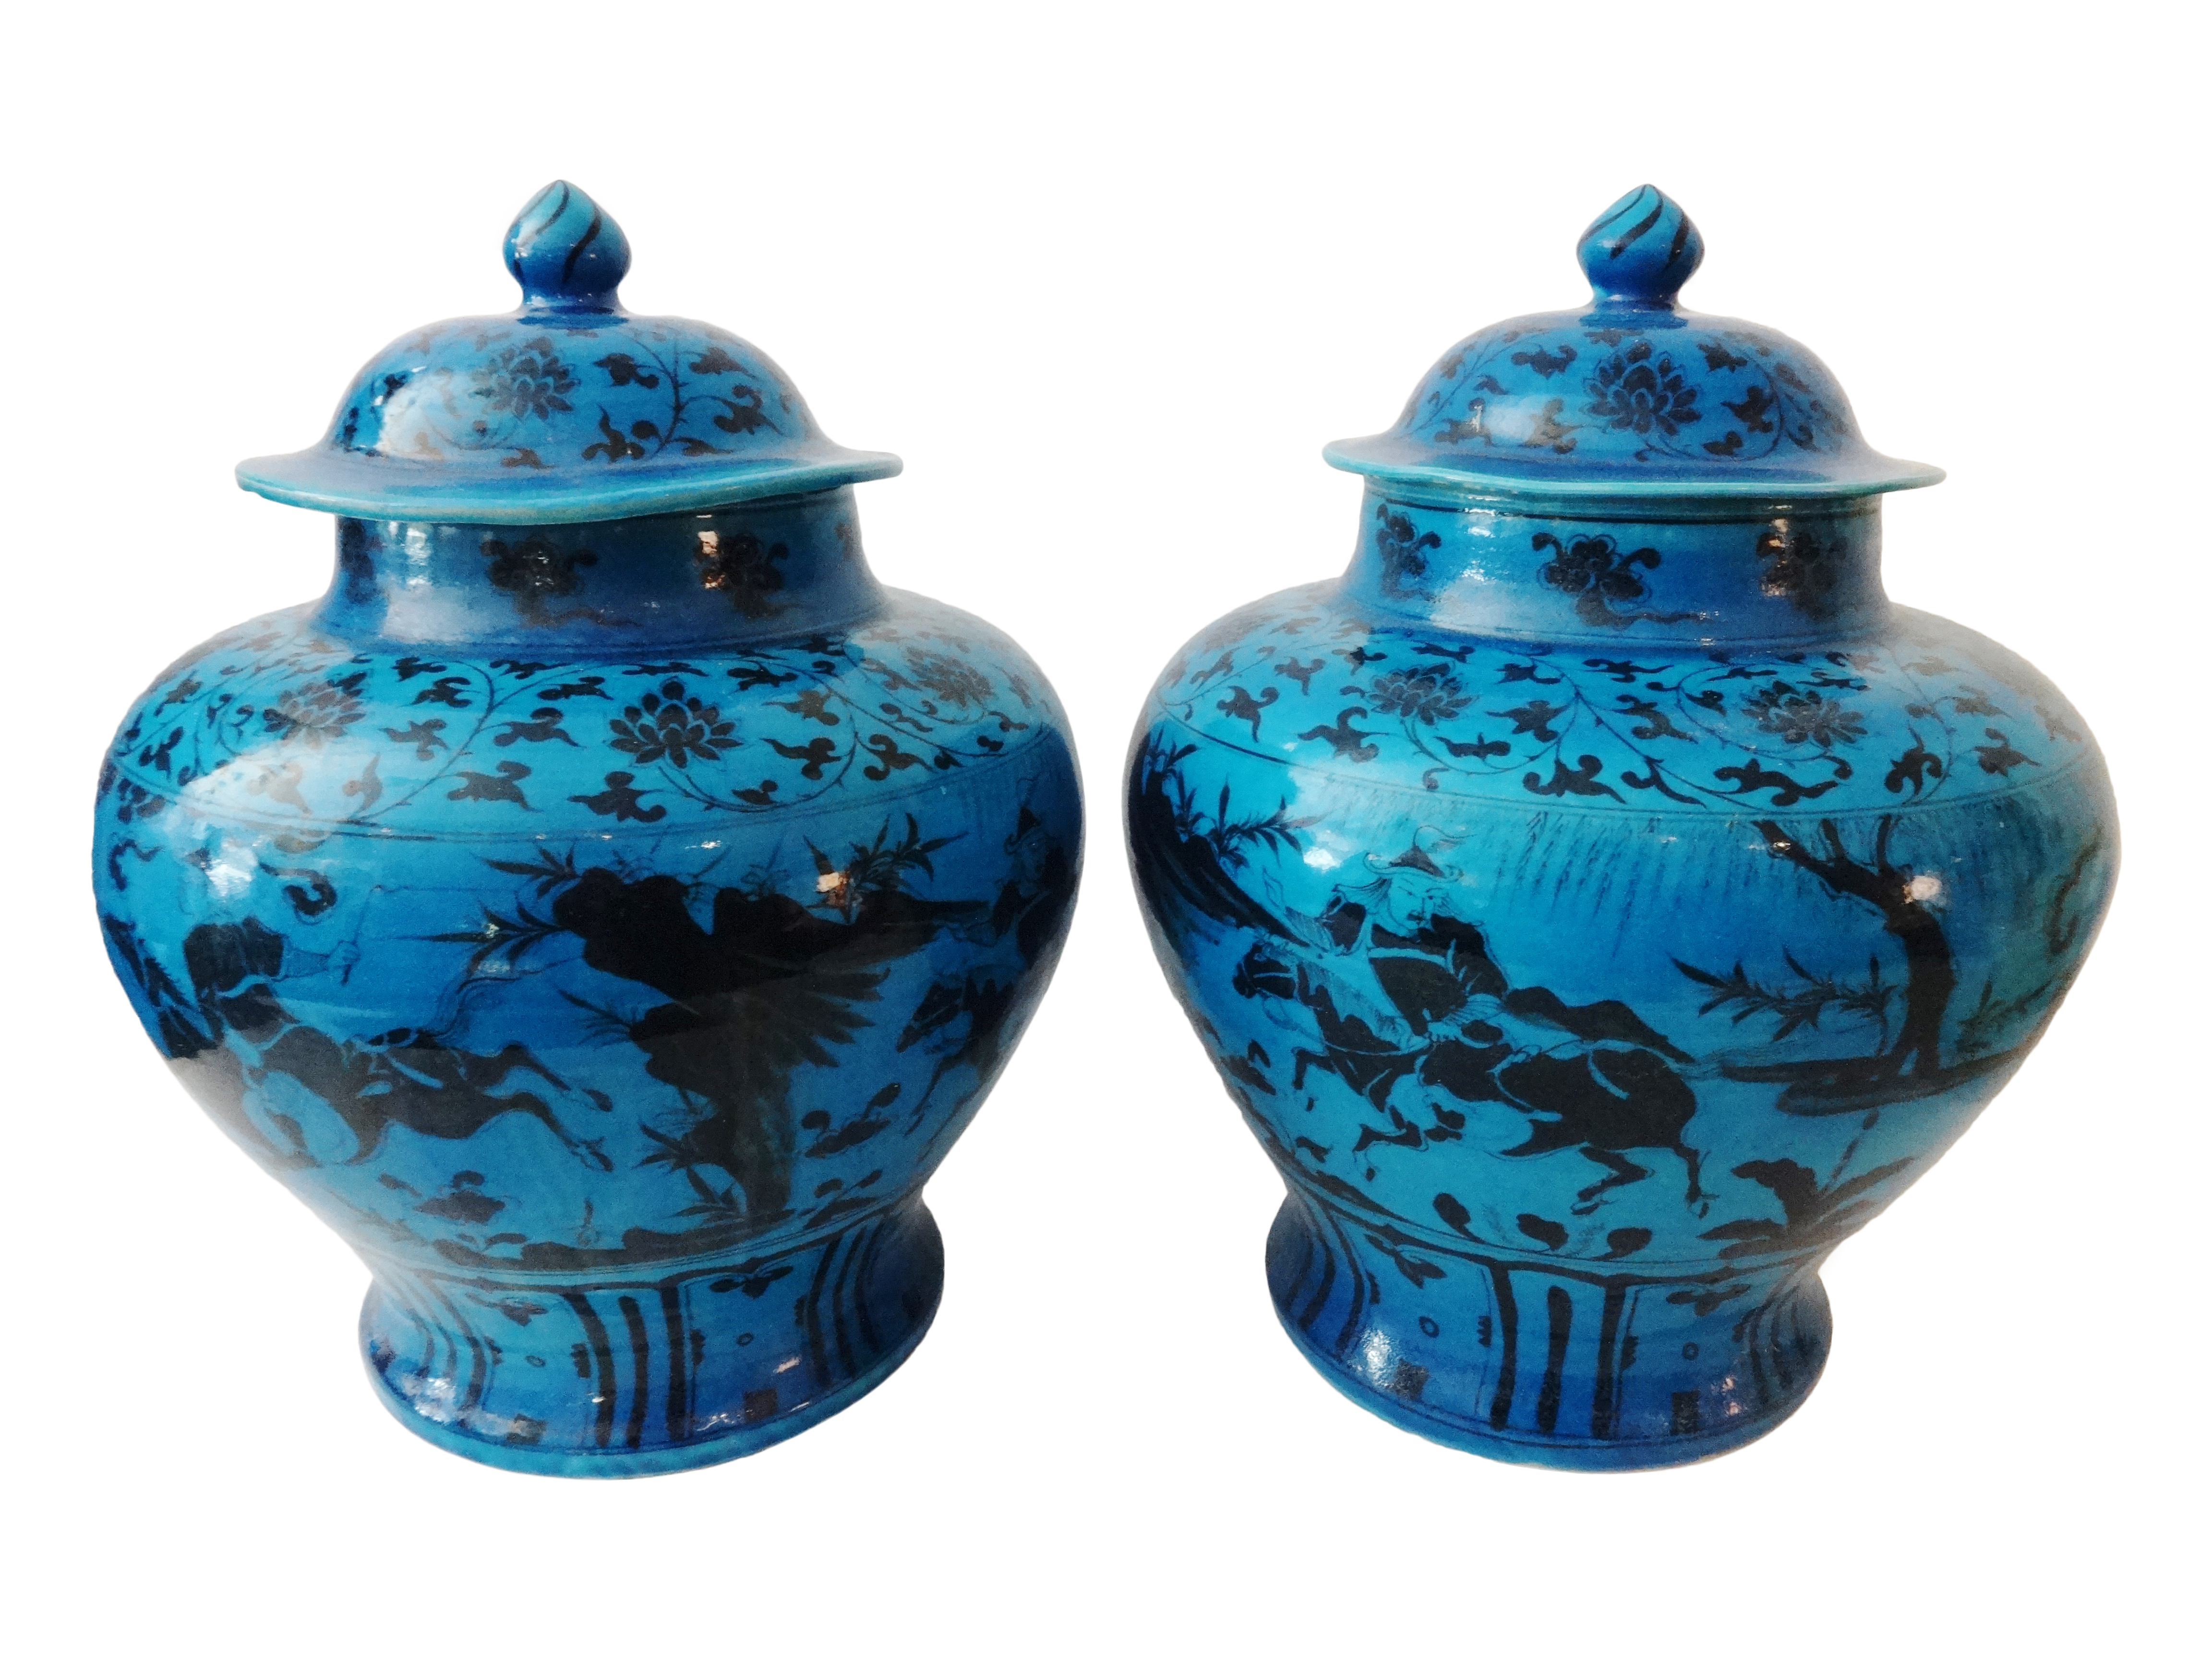 yuanstyle hunters ginger jars a pair